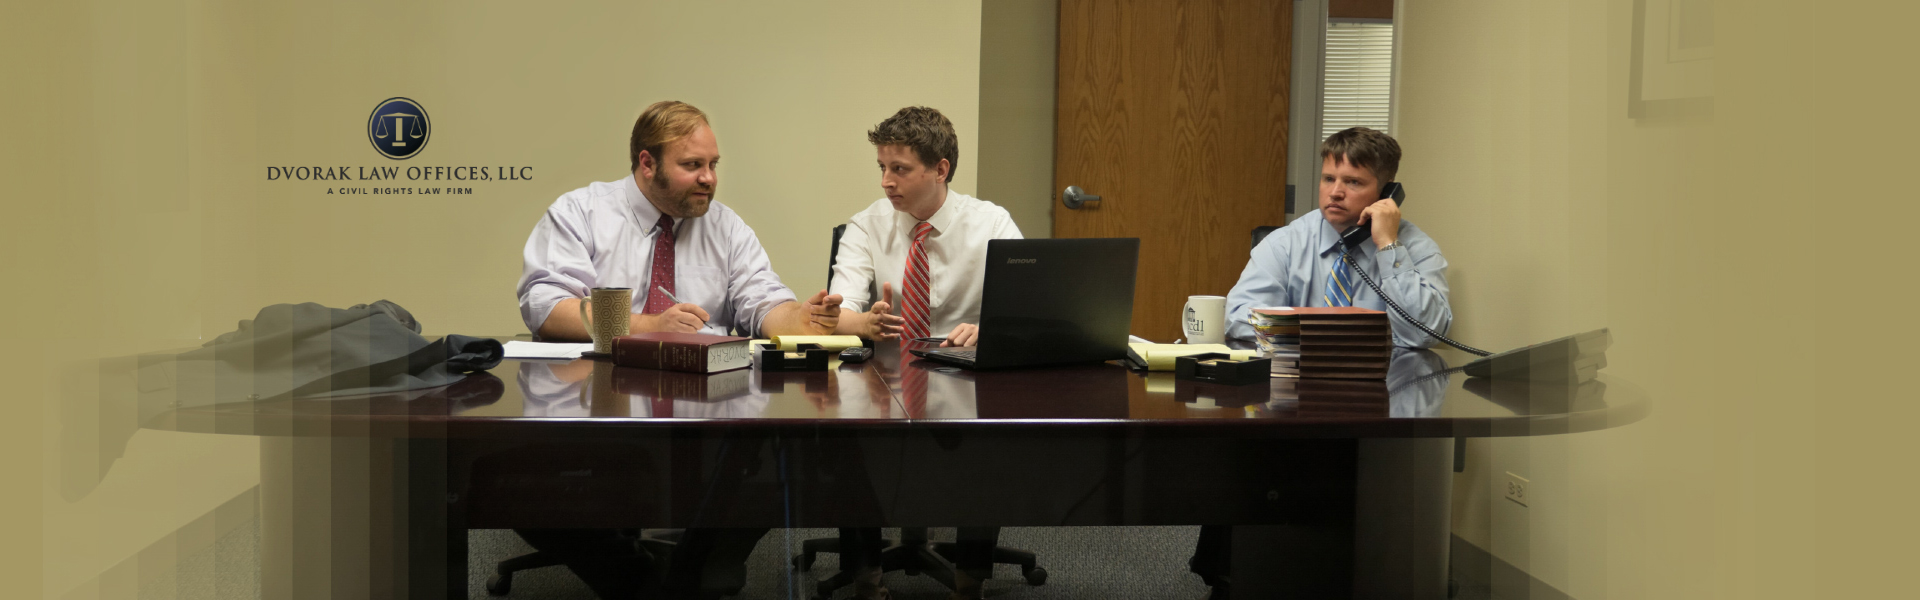 Criminal, Civil Rights and Appeals Attorneys in Chicago and DuPage County